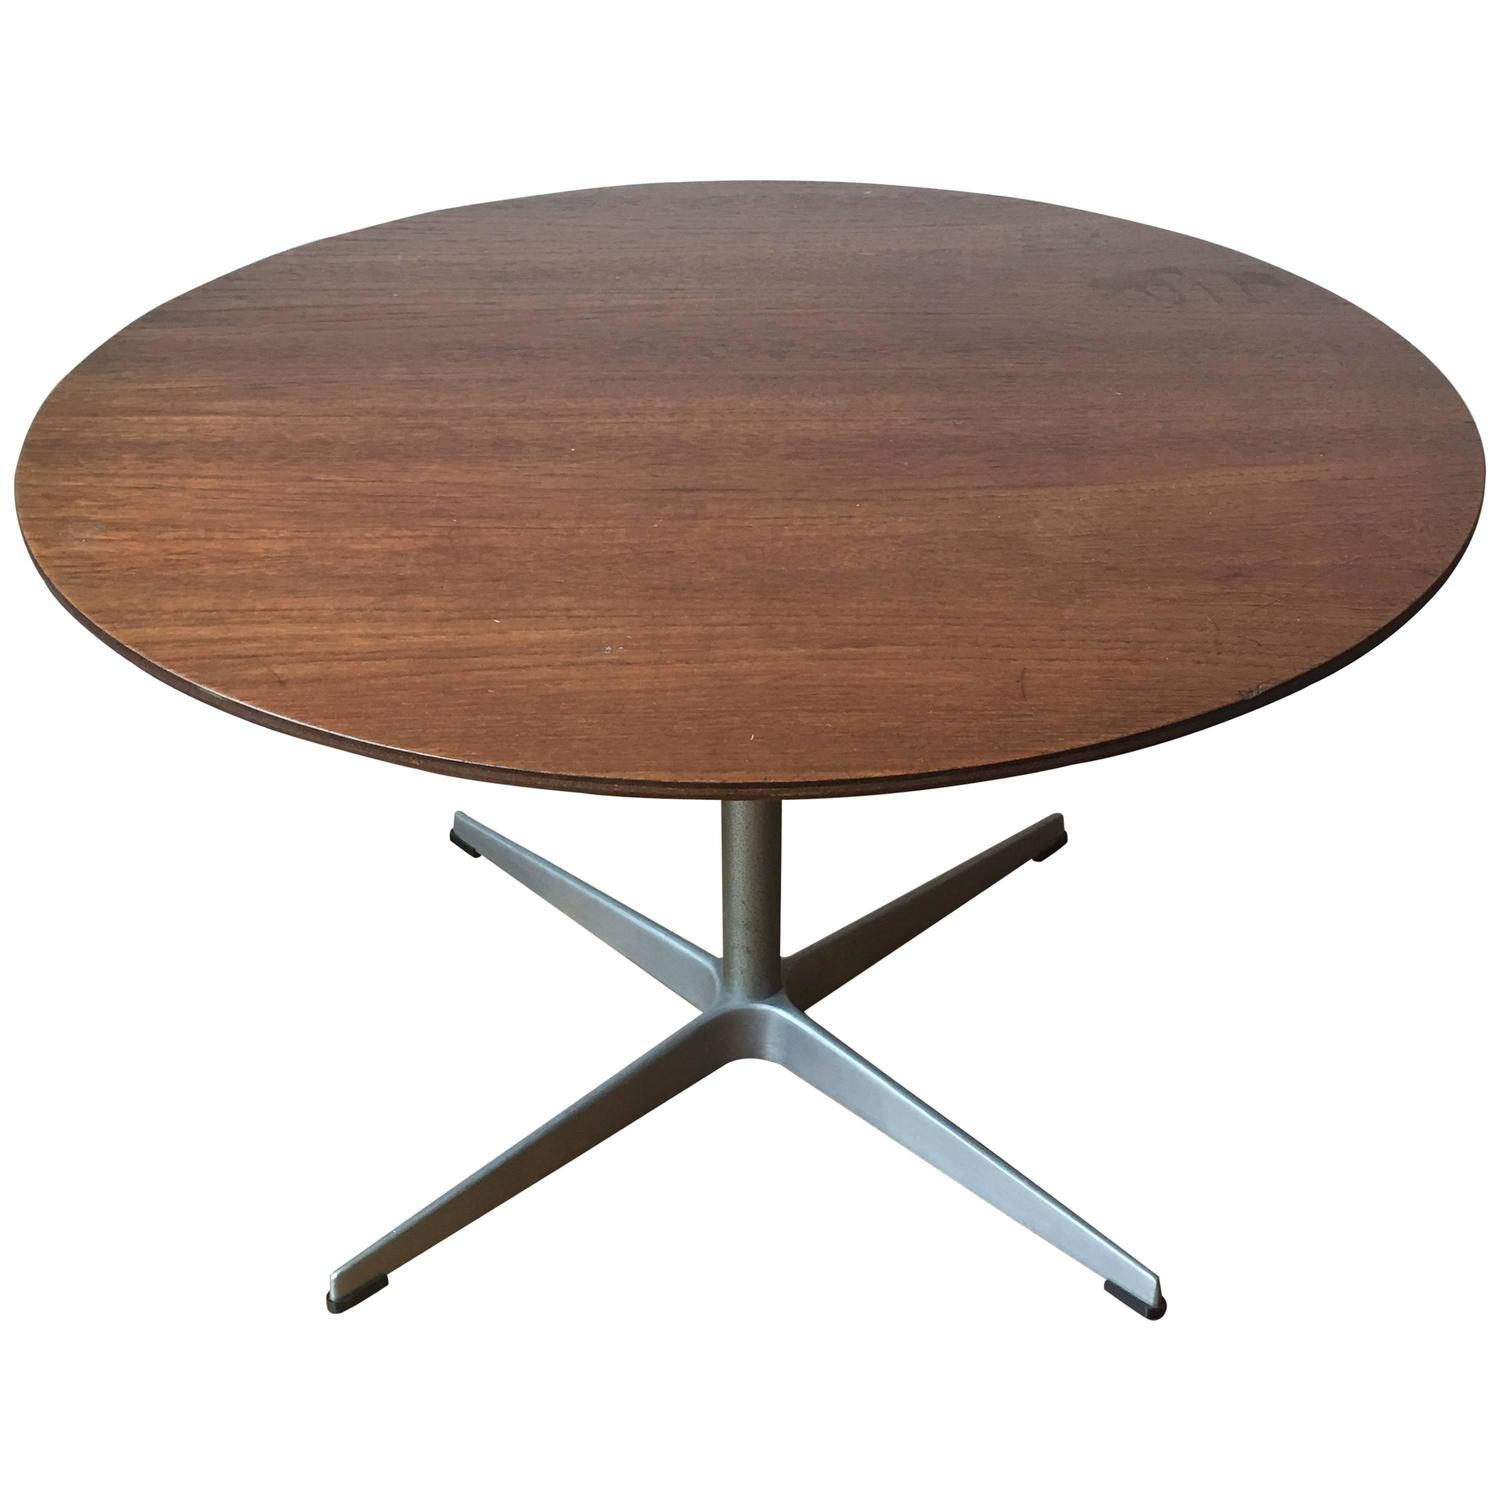 Arne Jacobsen for Fritz Hansen Teak Coffee Table For Sale at 1stdibs